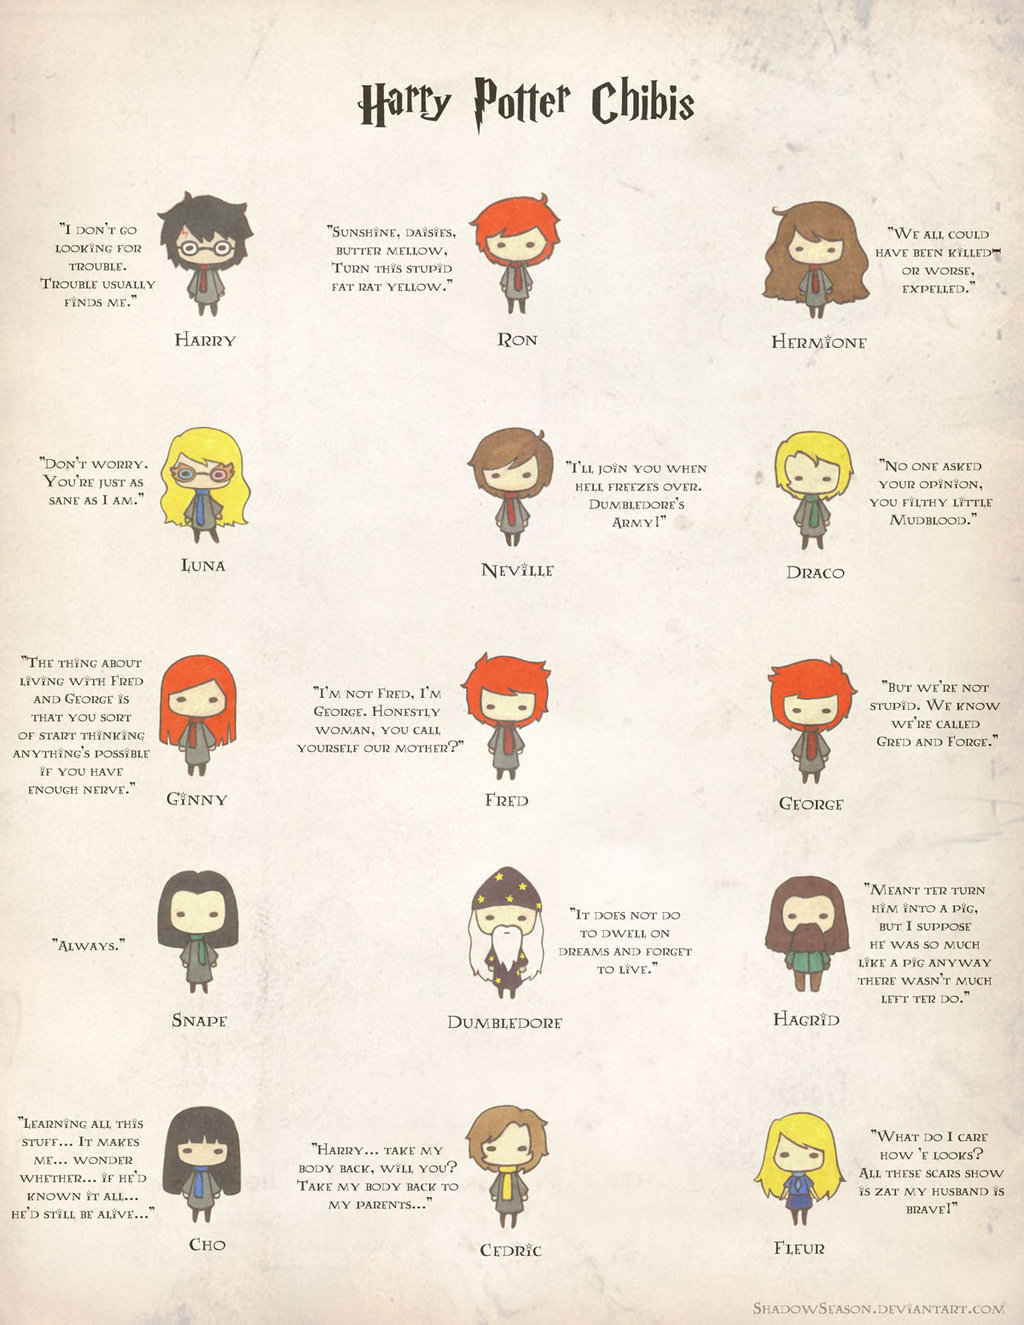 Hp Quotes Harry Potter Chibis  Quotesshadowseason